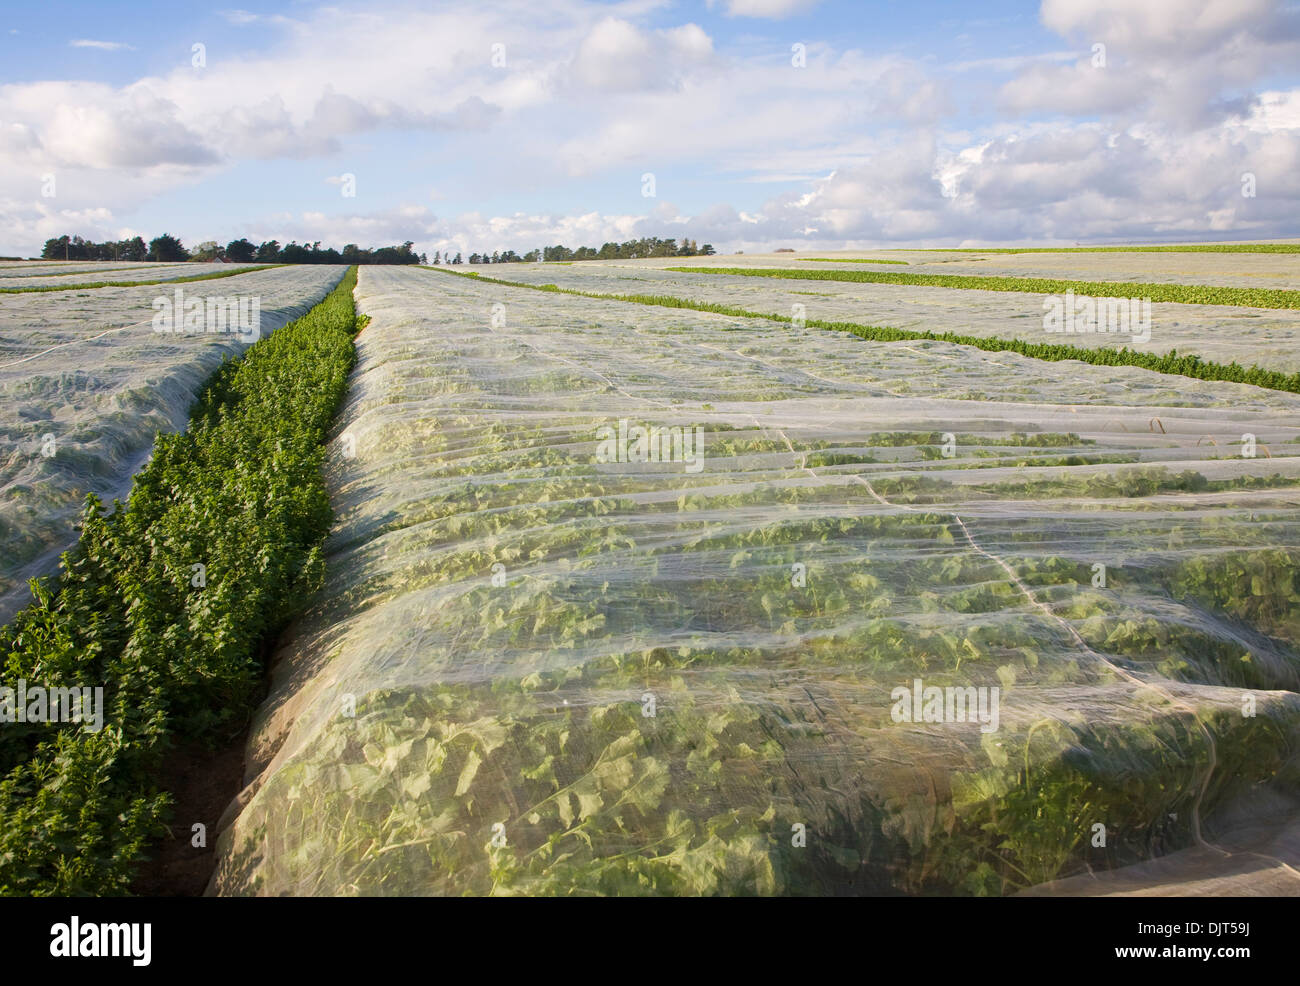 Protecting fleecing covering turnip crop in field Hollesley, Suffolk, England - Stock Image